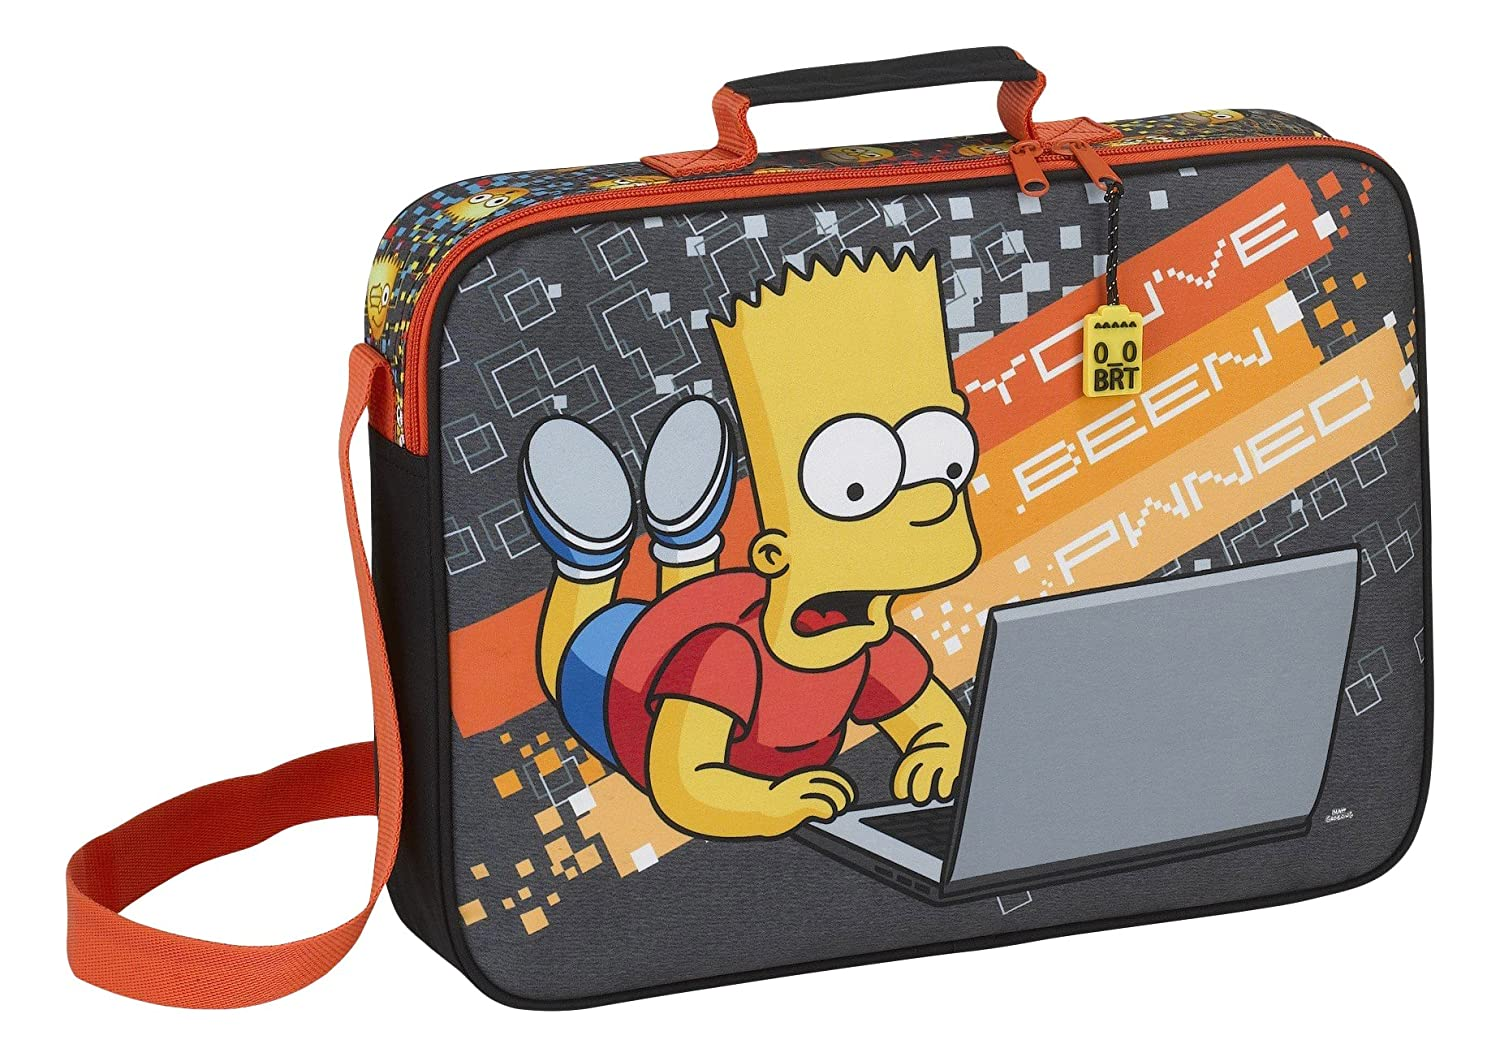 Los Simpsons - Cartera Bandolera extraescolares (SAFTA 611705385)https://amzn.to/2OvG8Up